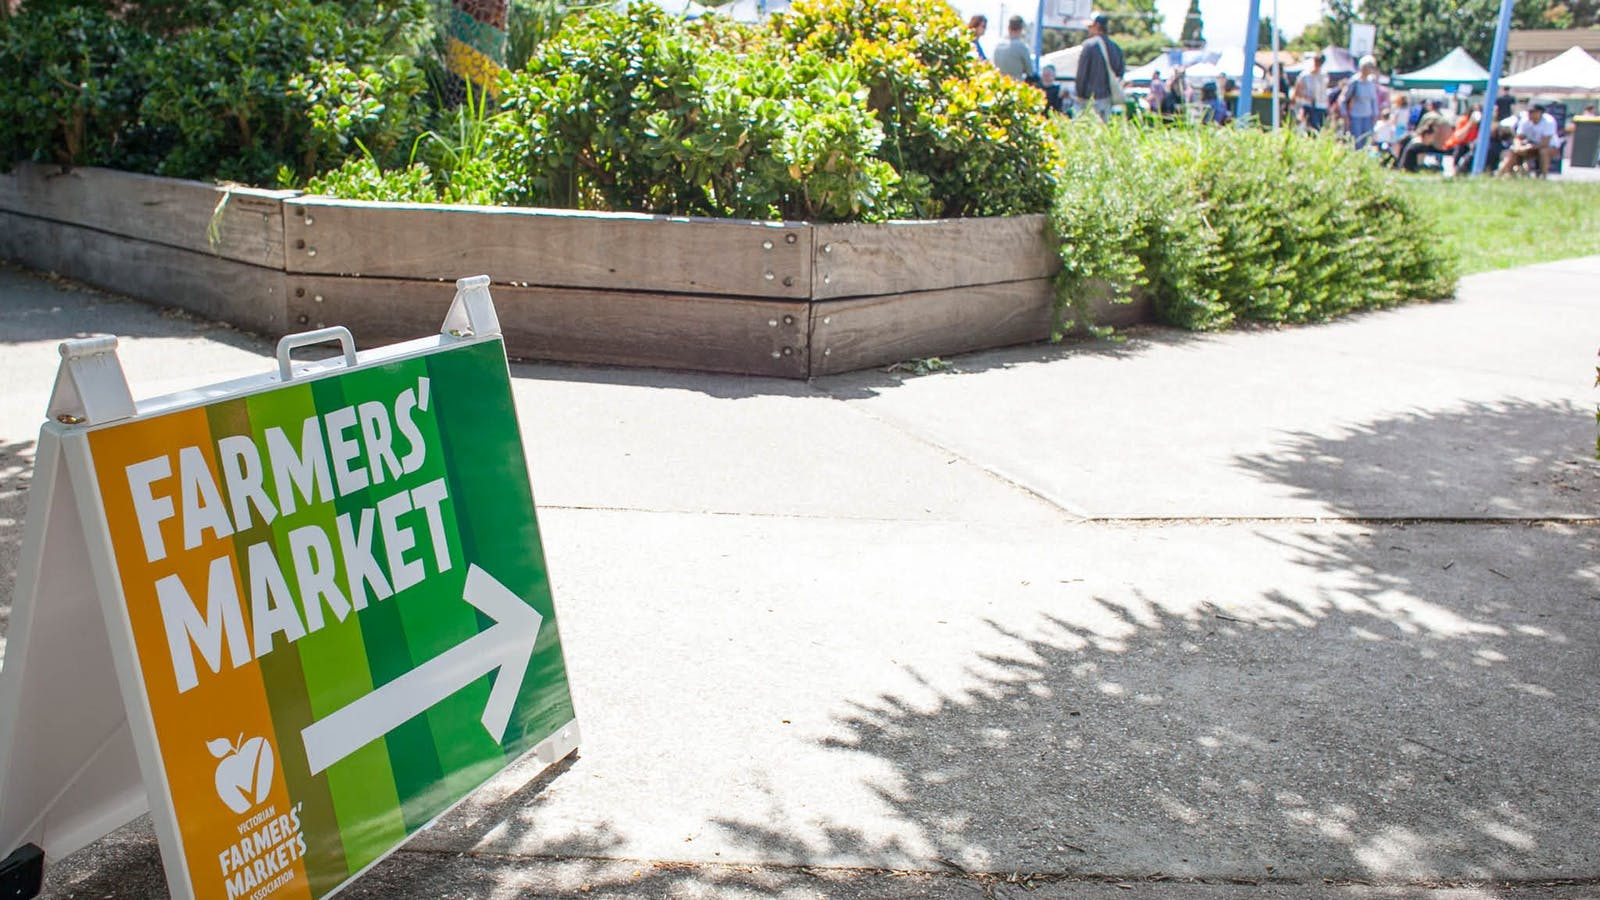 Coburg Farmers Market, accredited by the VFMA